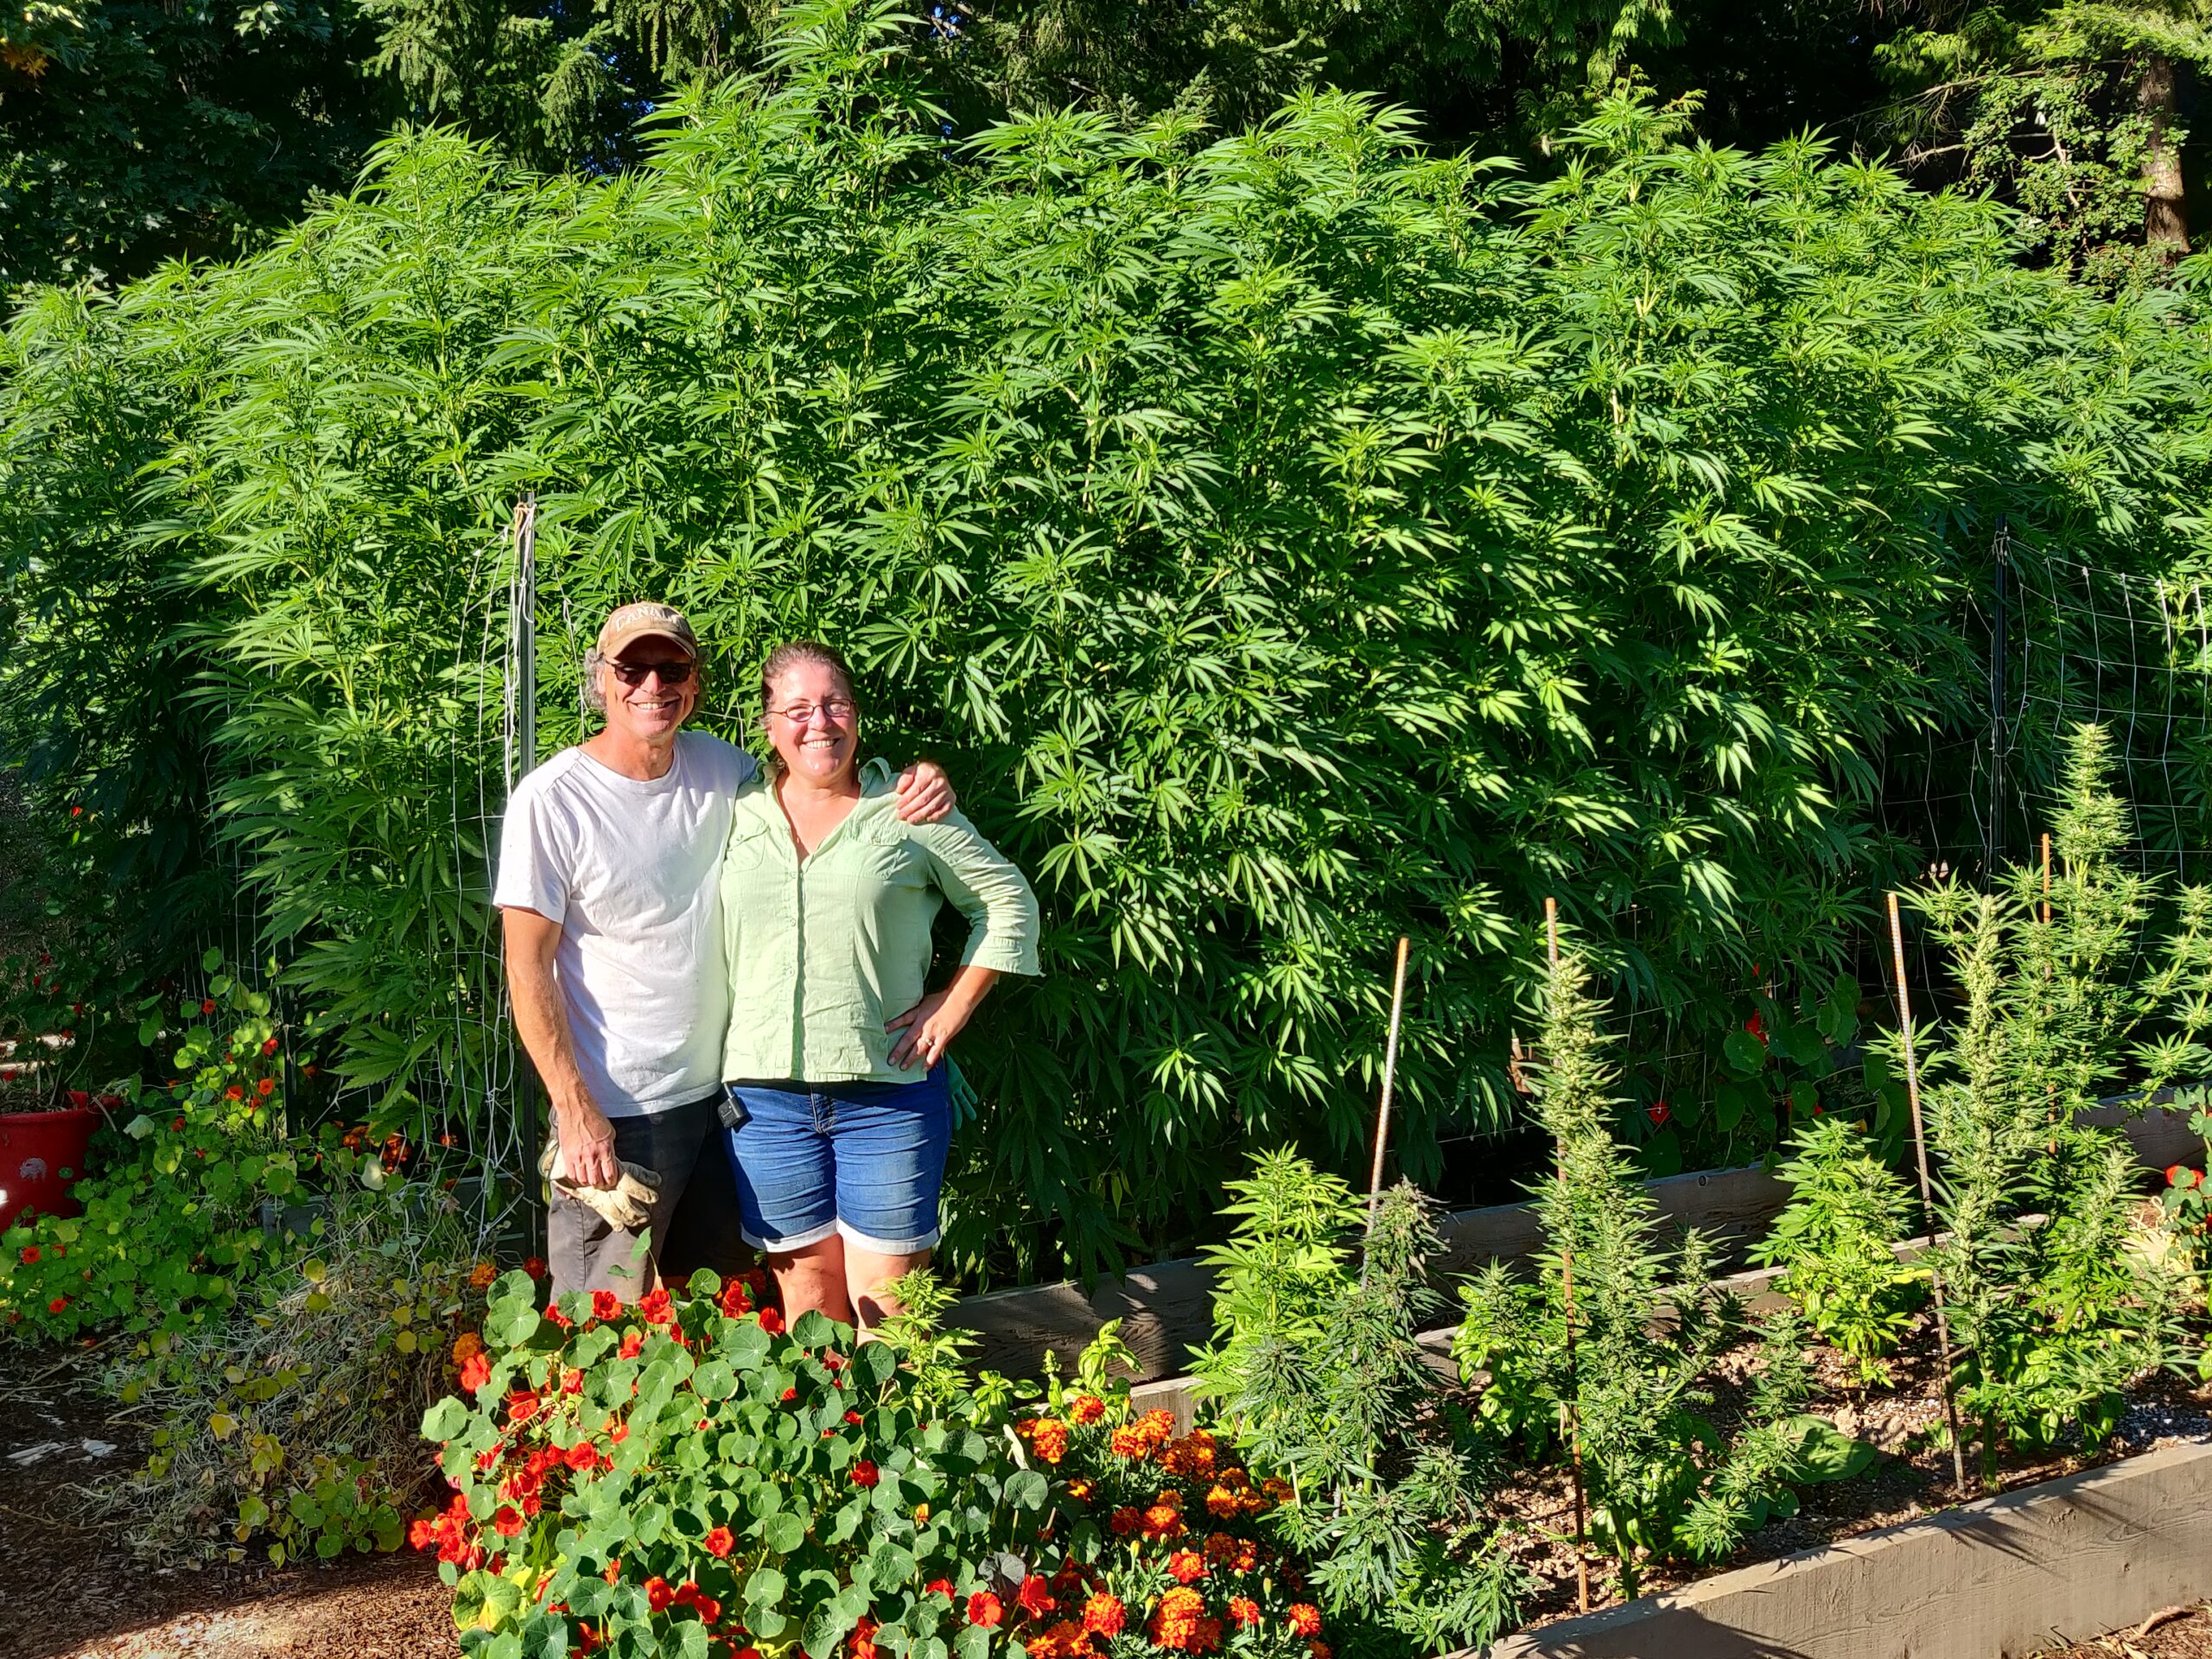 Small BC farm loses home insurance because of legal cannabis